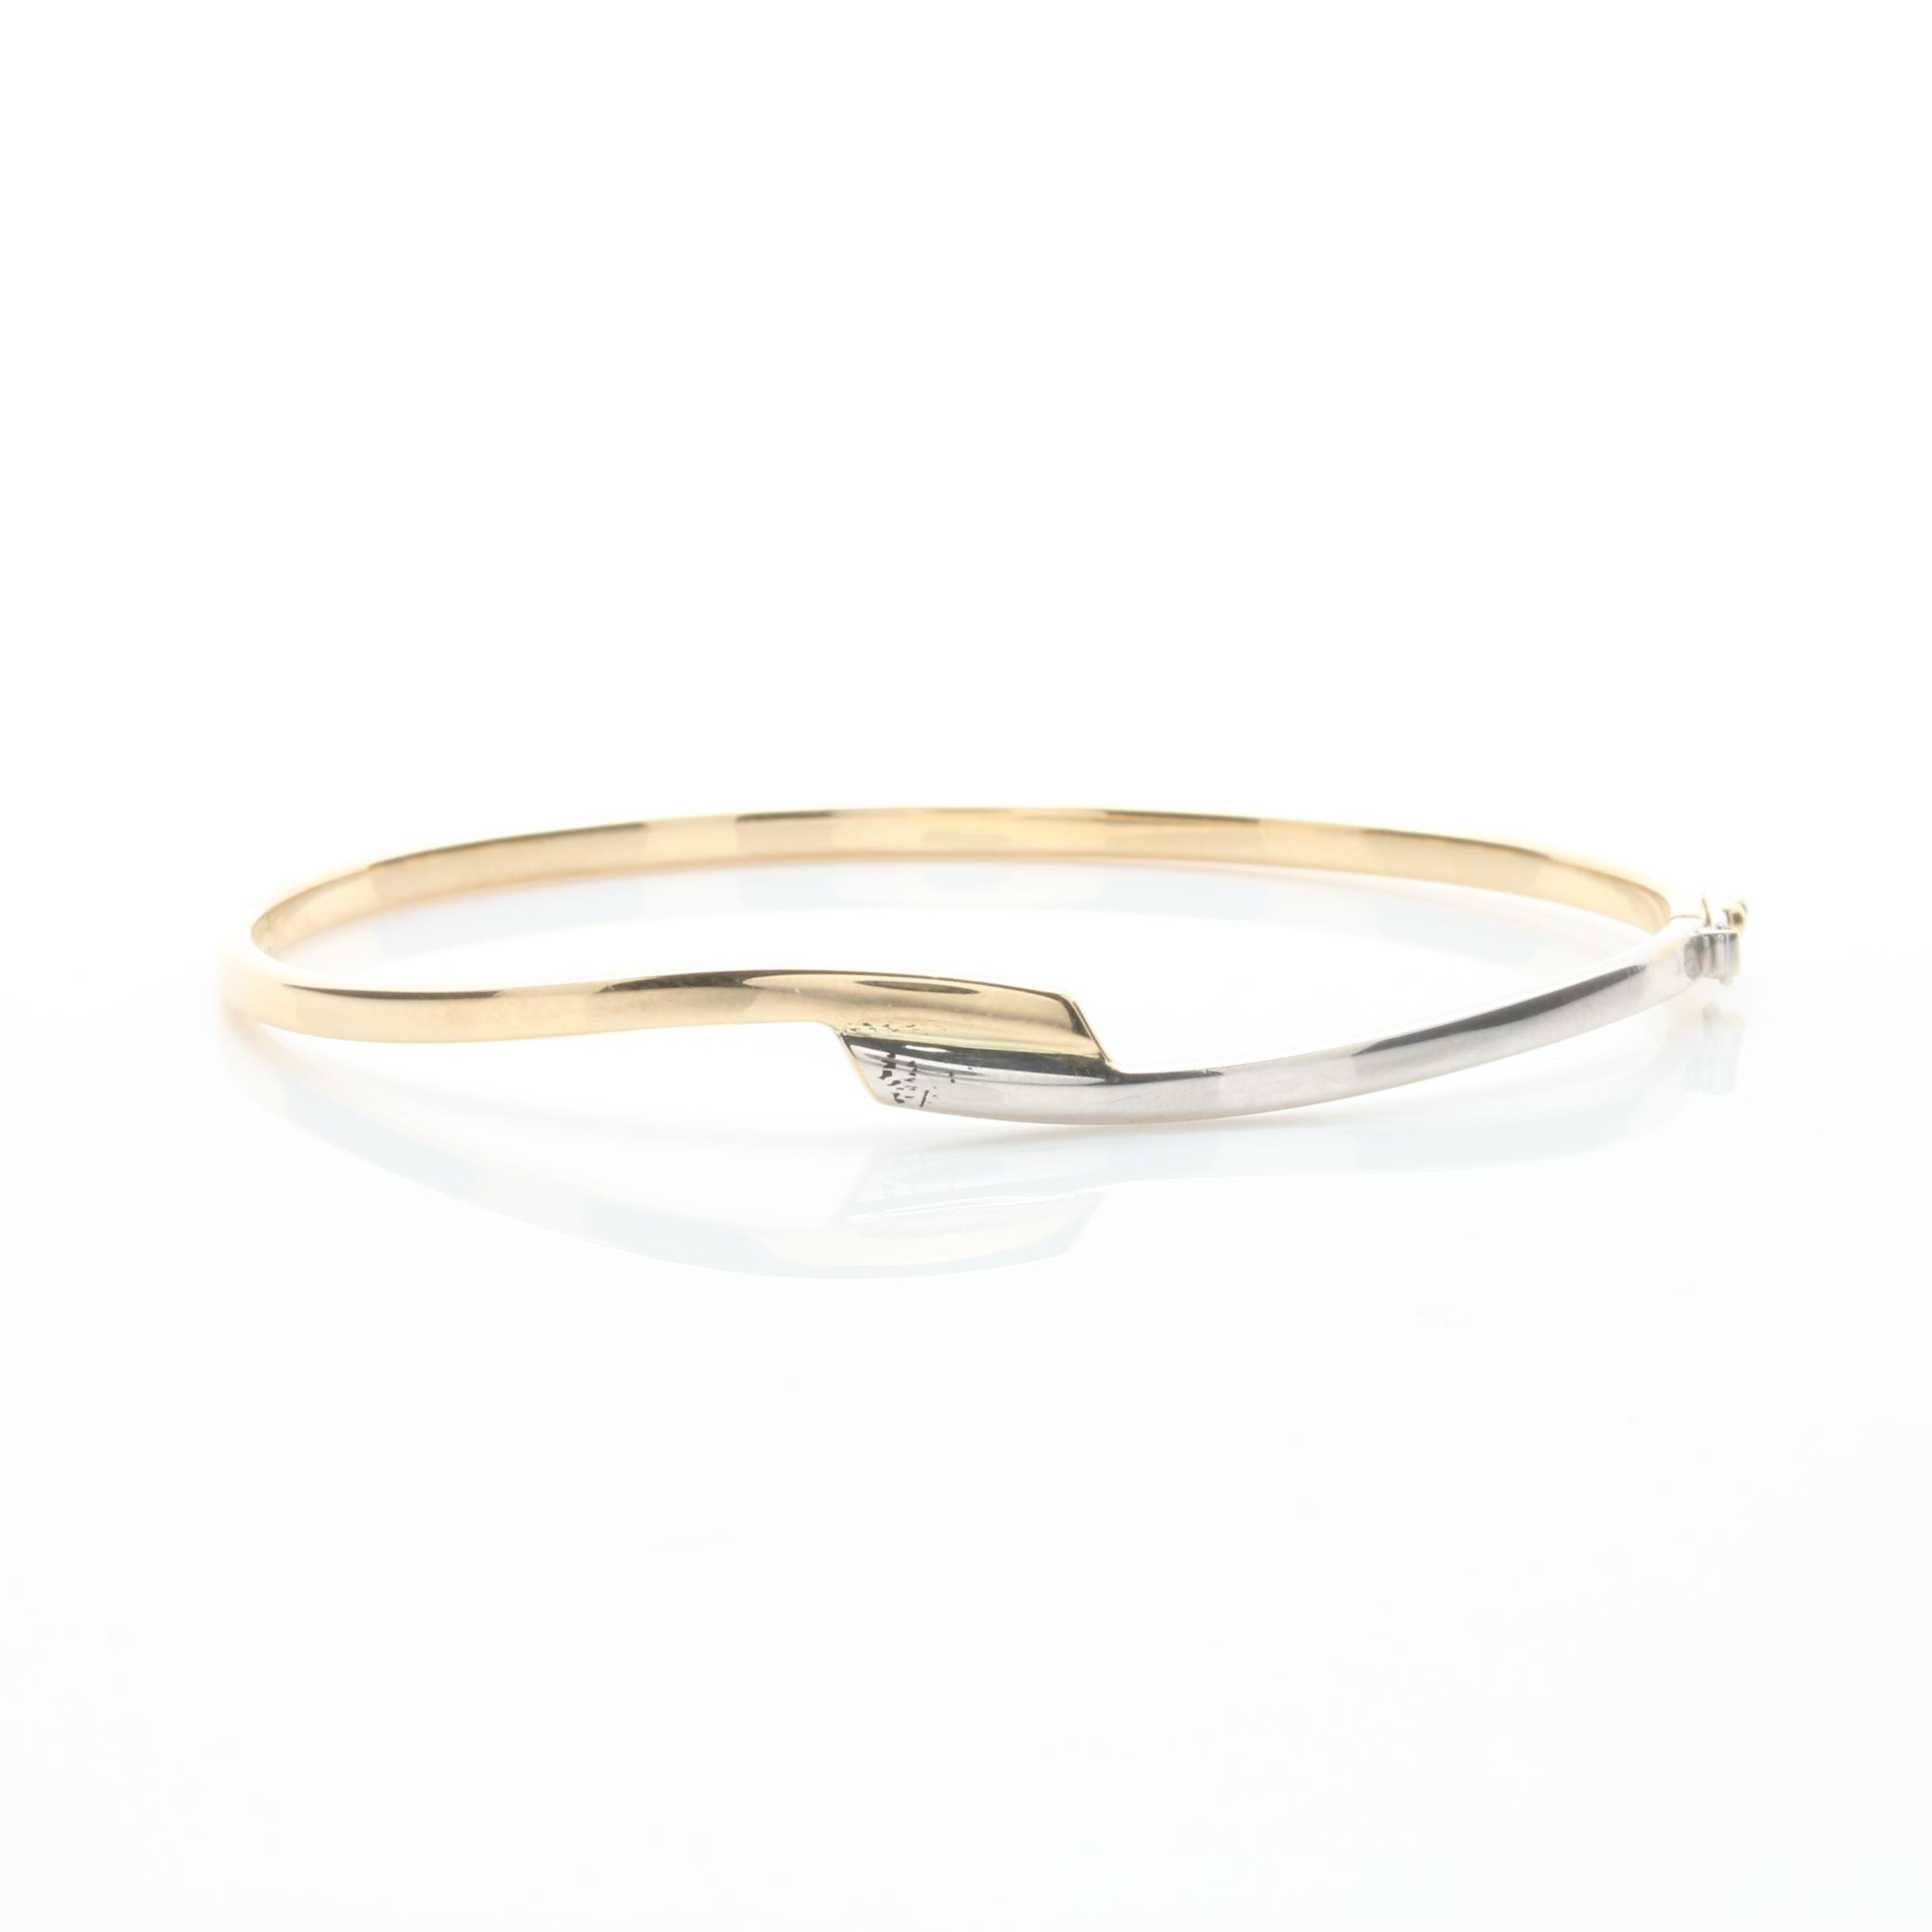 14K White and Yellow Gold Hinged Bangle Bracelet